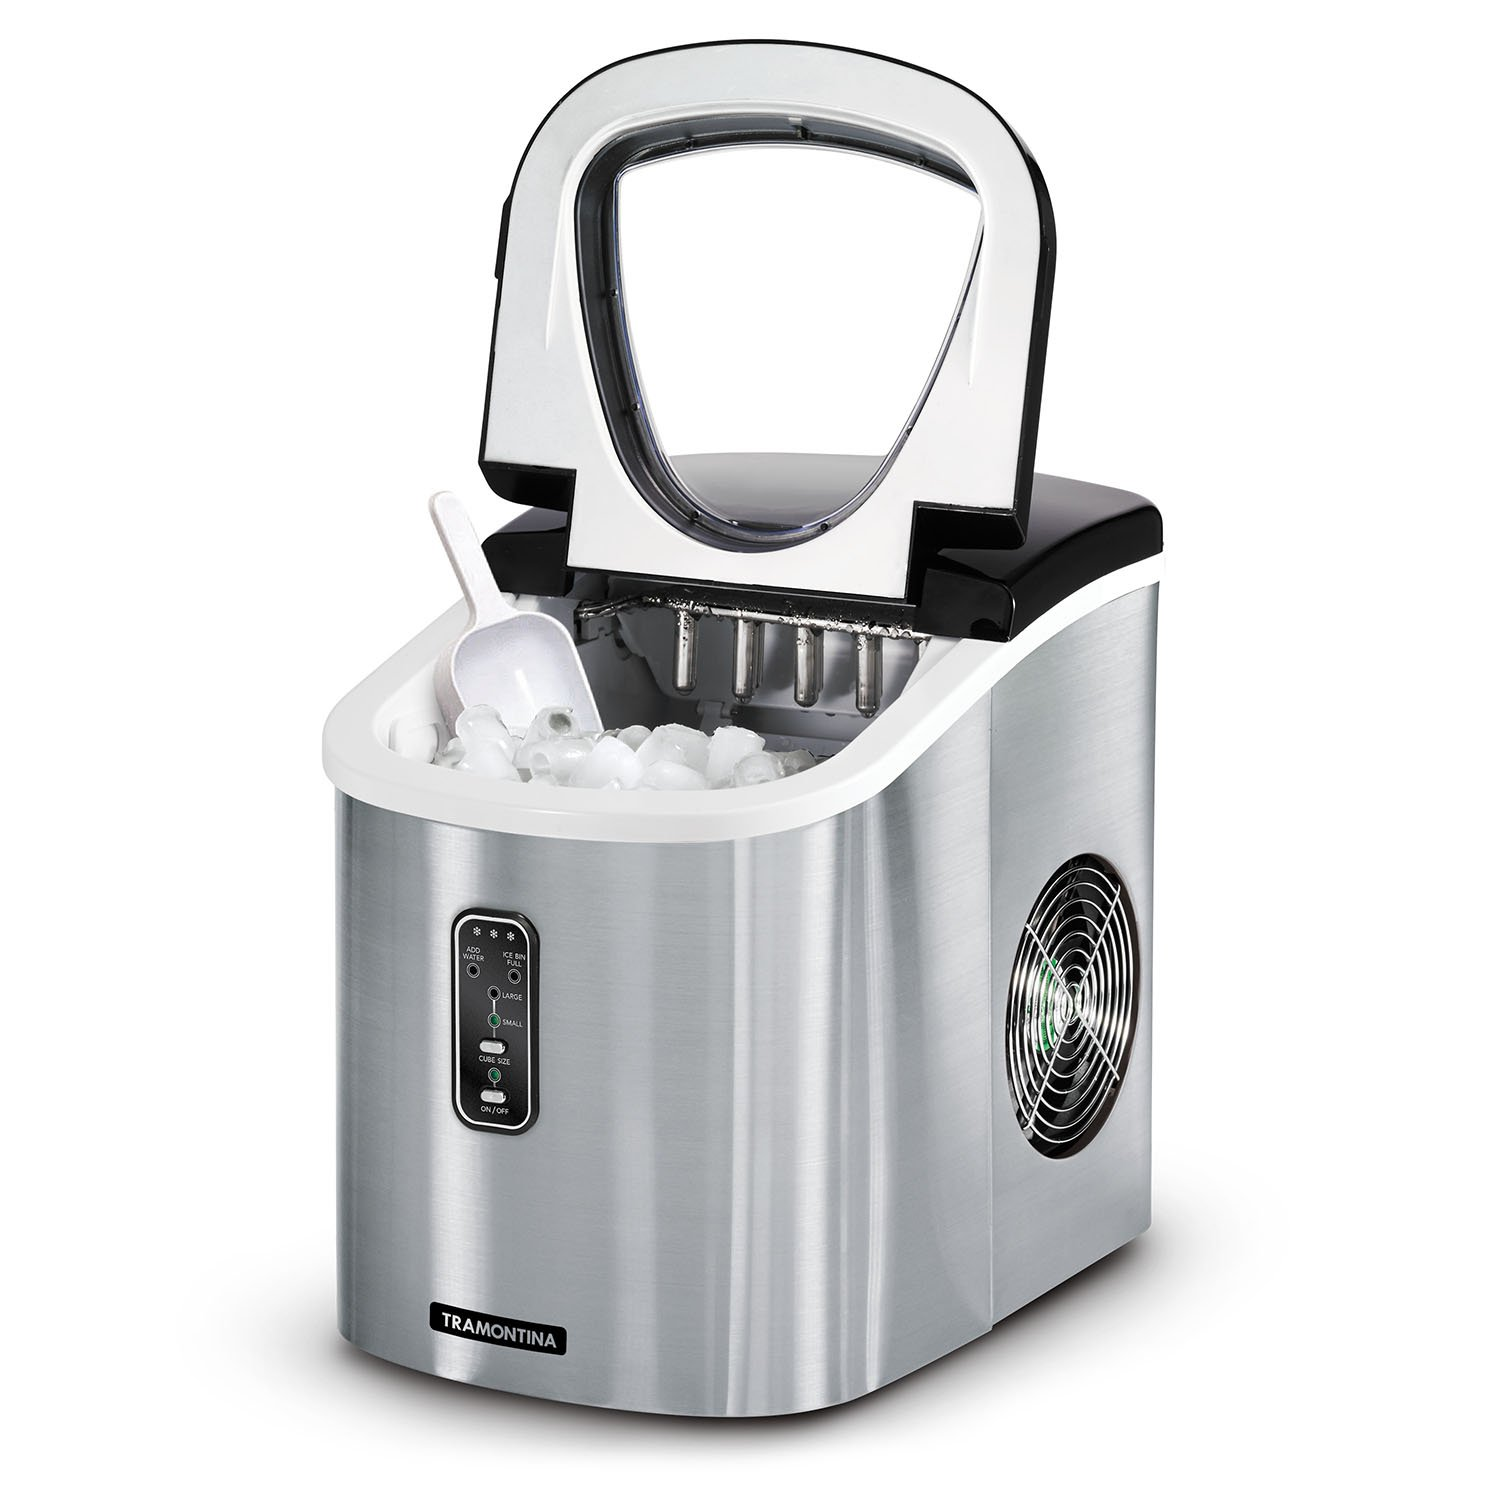 Countertop Ice Maker Walmart Tramontina Stainless Steel Ice Maker Stainless